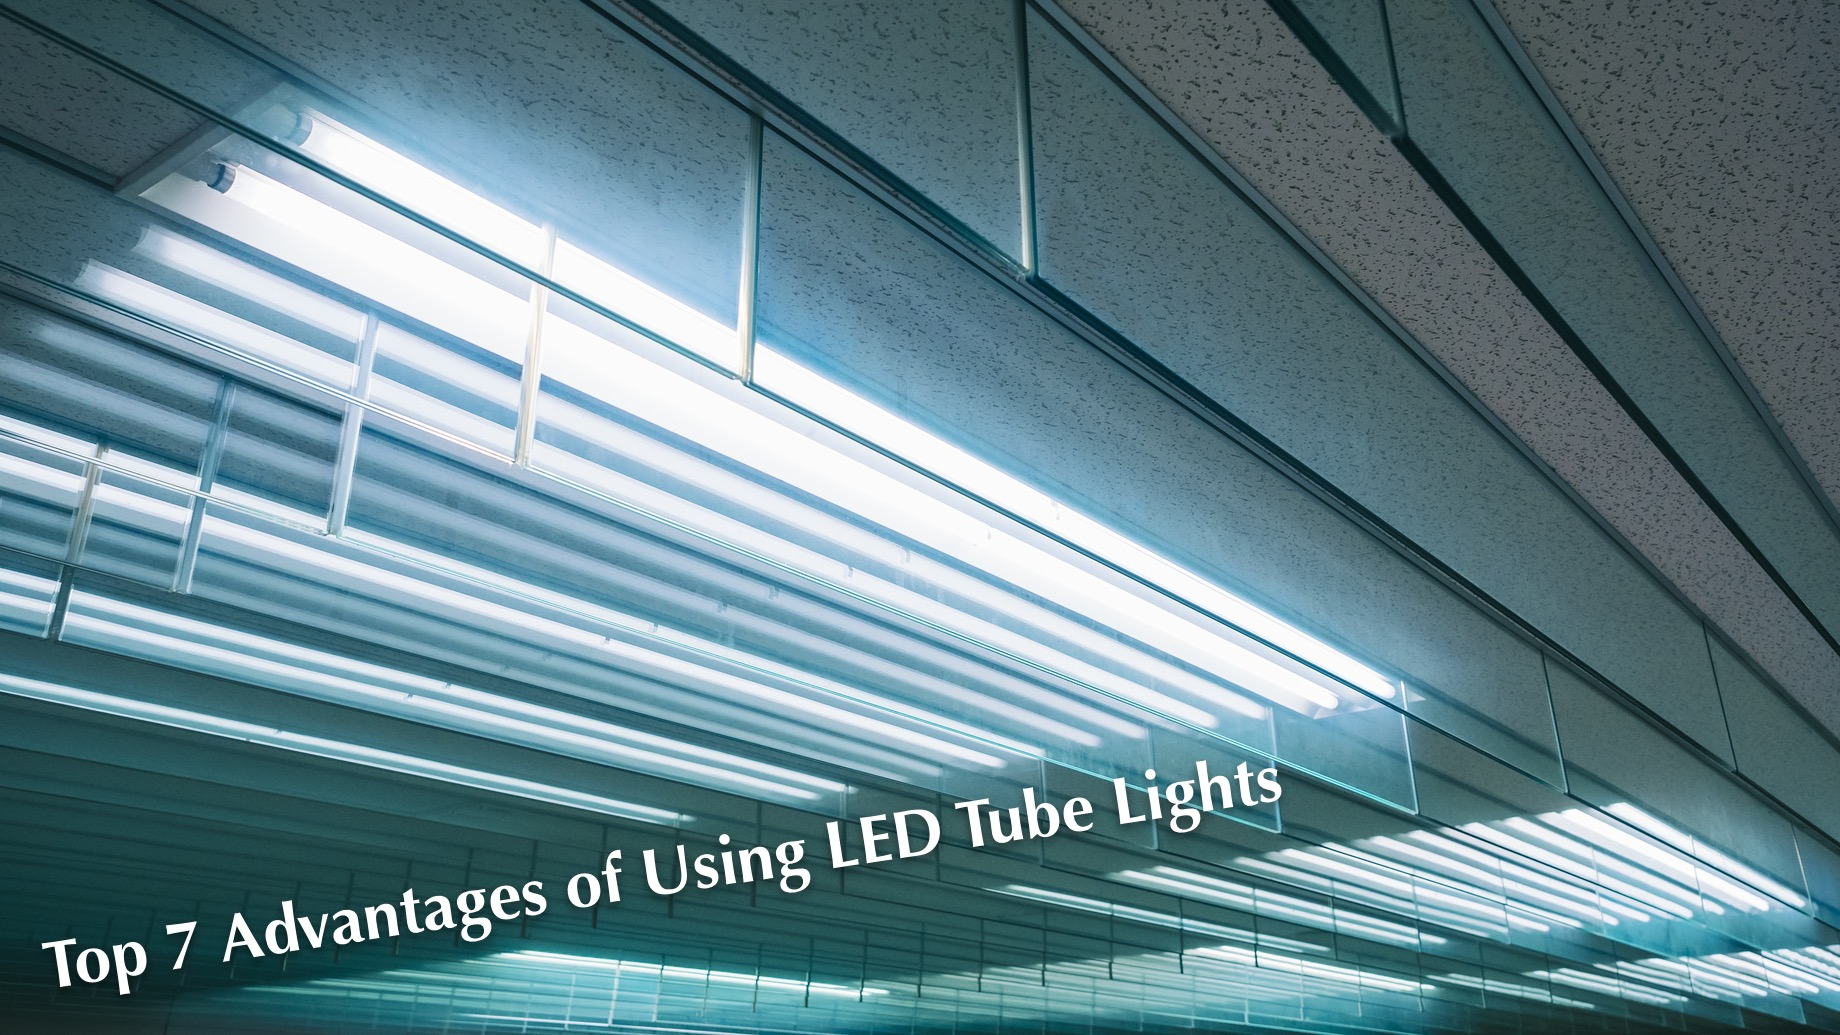 Top 7 Advantages of Using LED Tube Lights